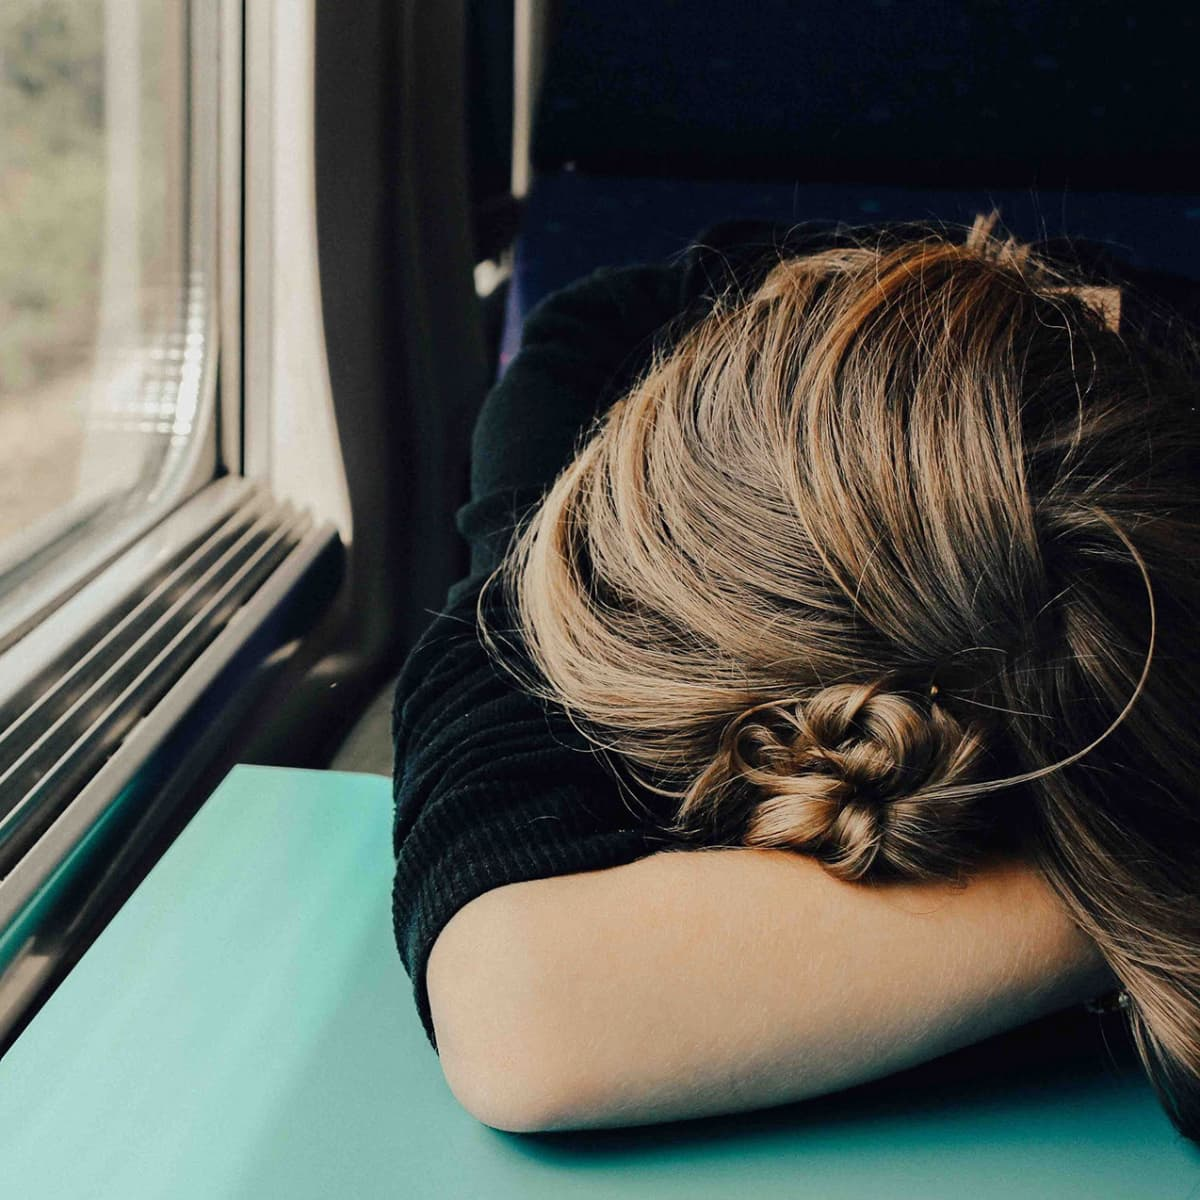 A woman napping on a train.